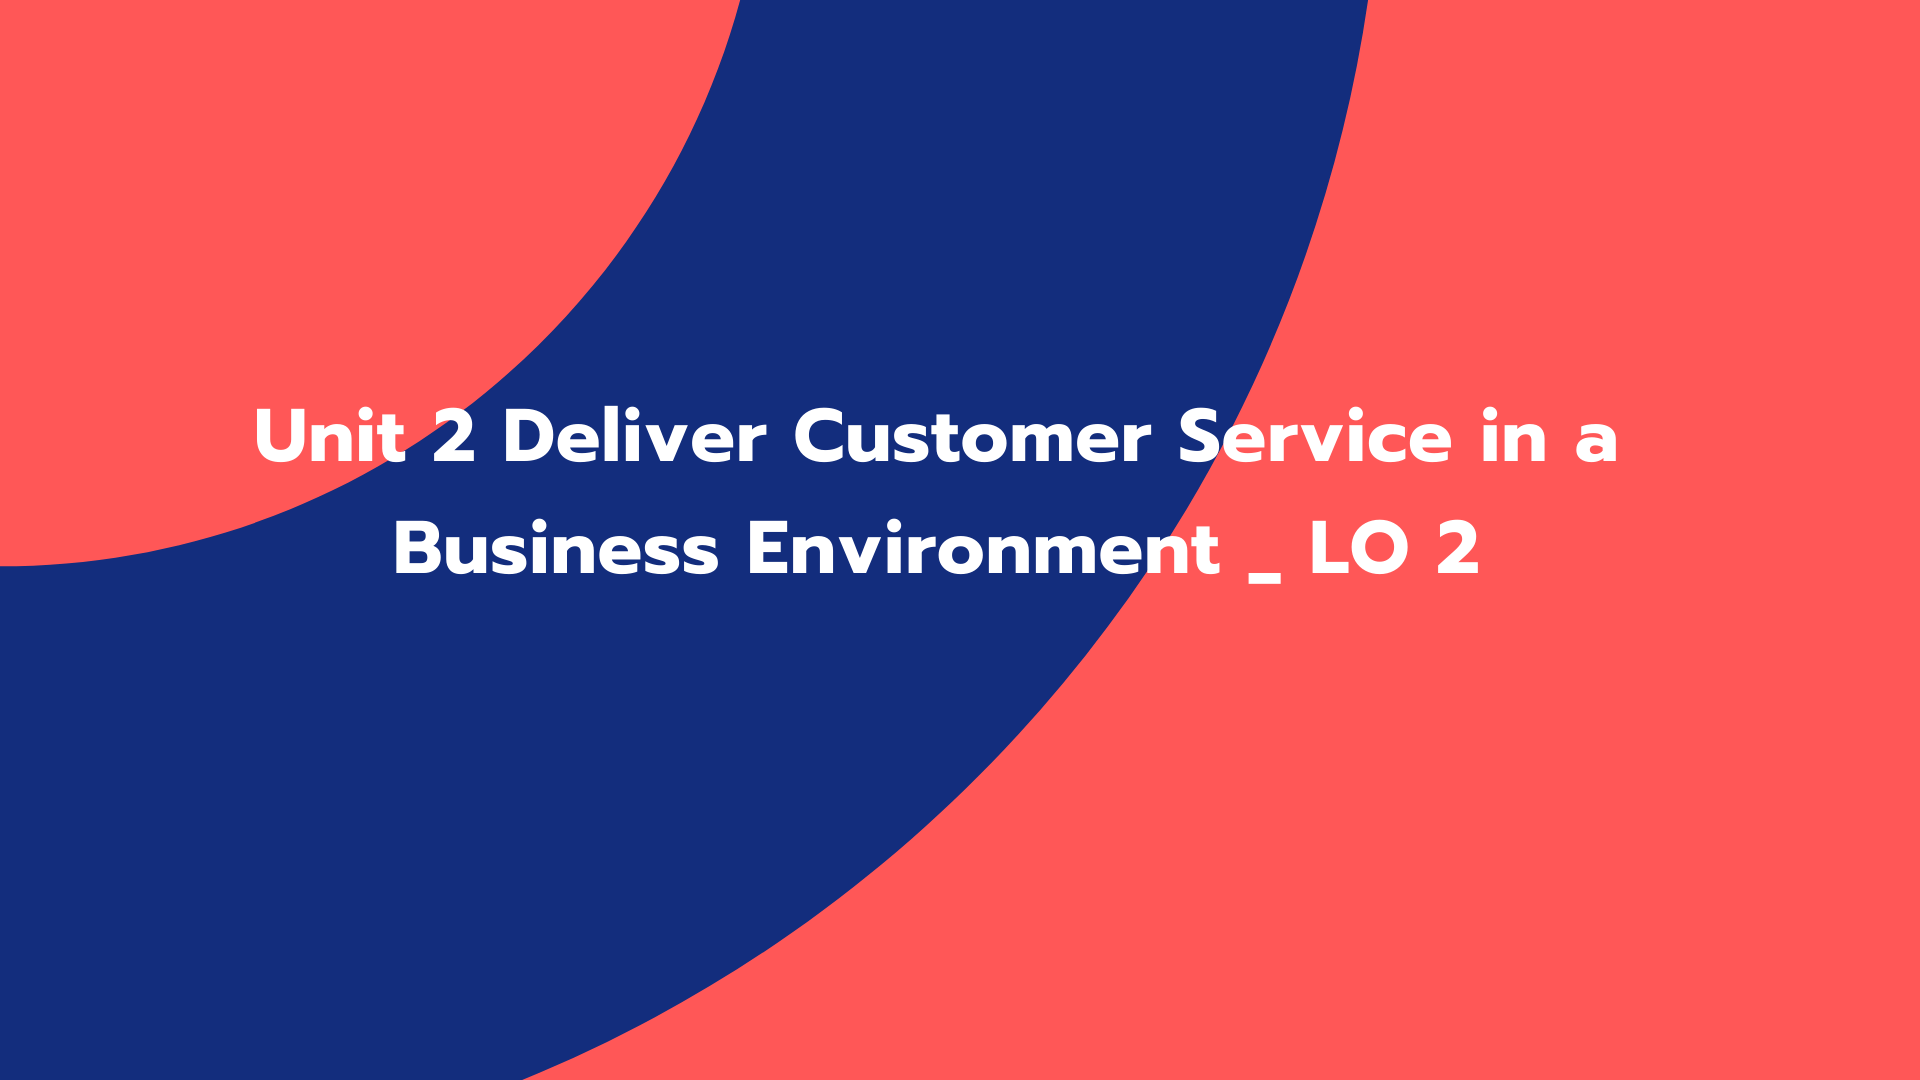 Unit 2 Deliver Customer Service in a Business Environment _ LO 2